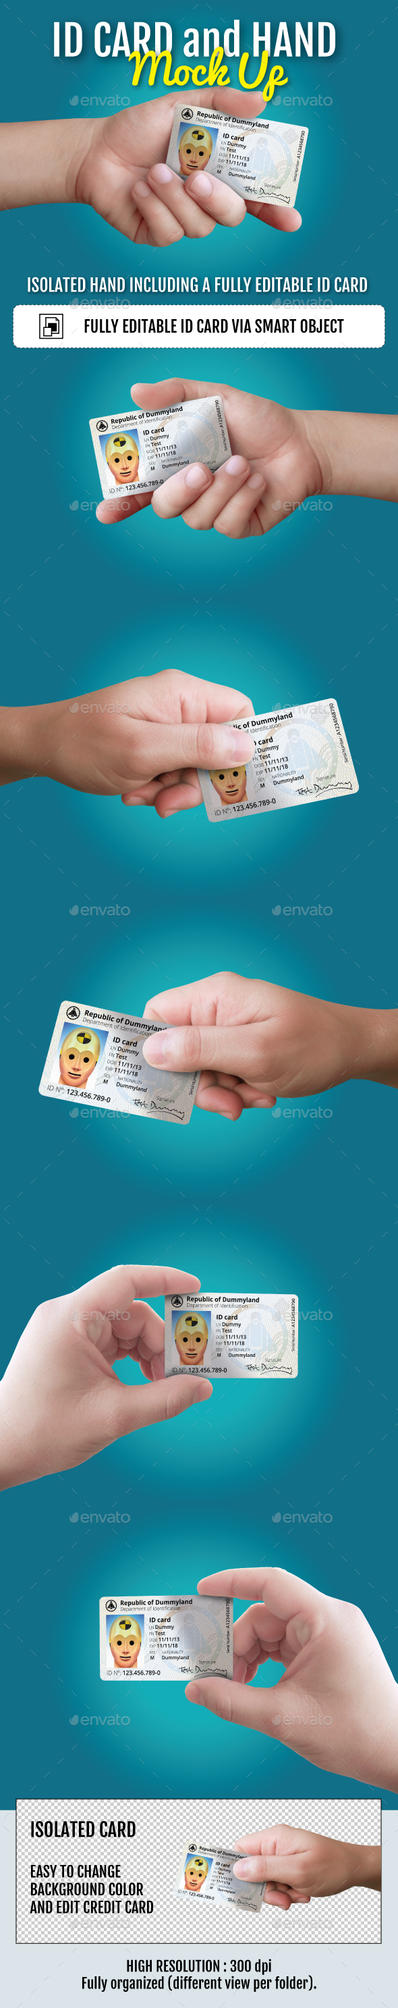 ID Card and Hand Mockup by doghead